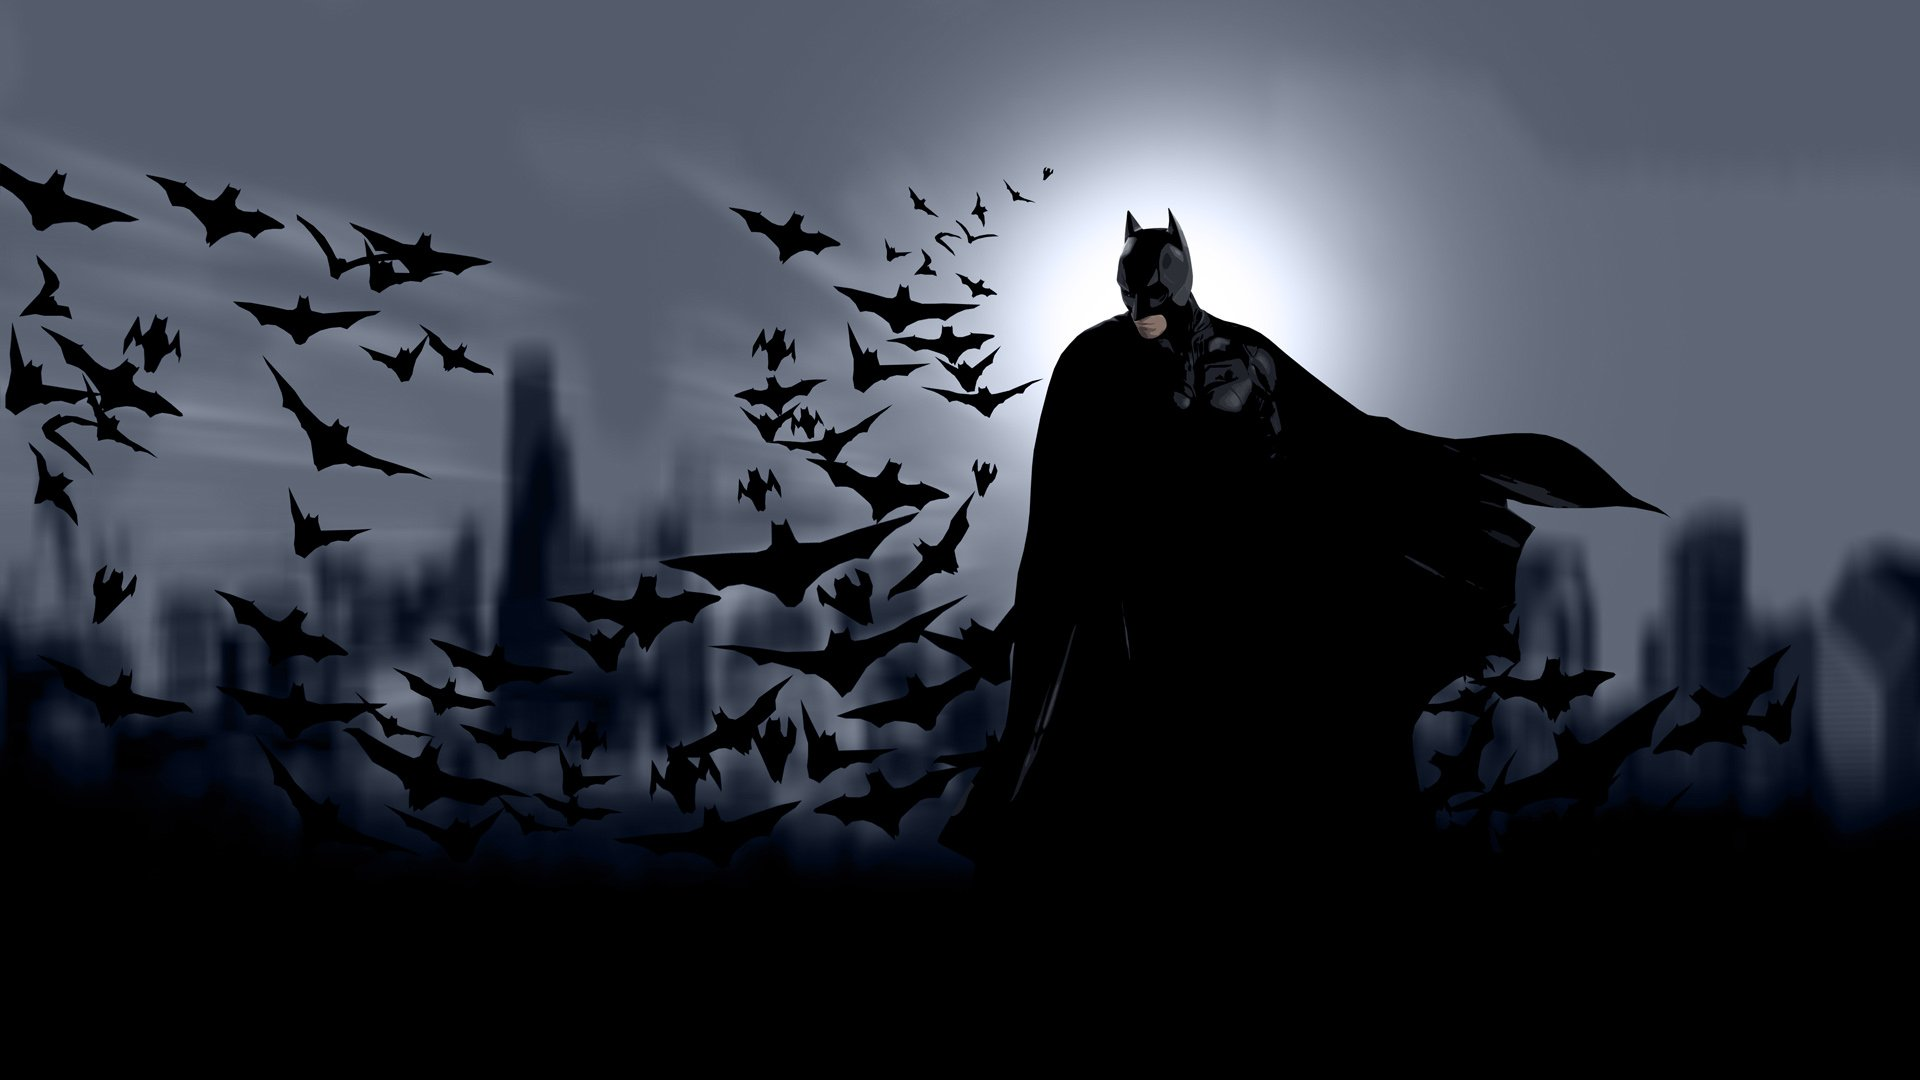 What You Need To Know About Batman Wallpaper